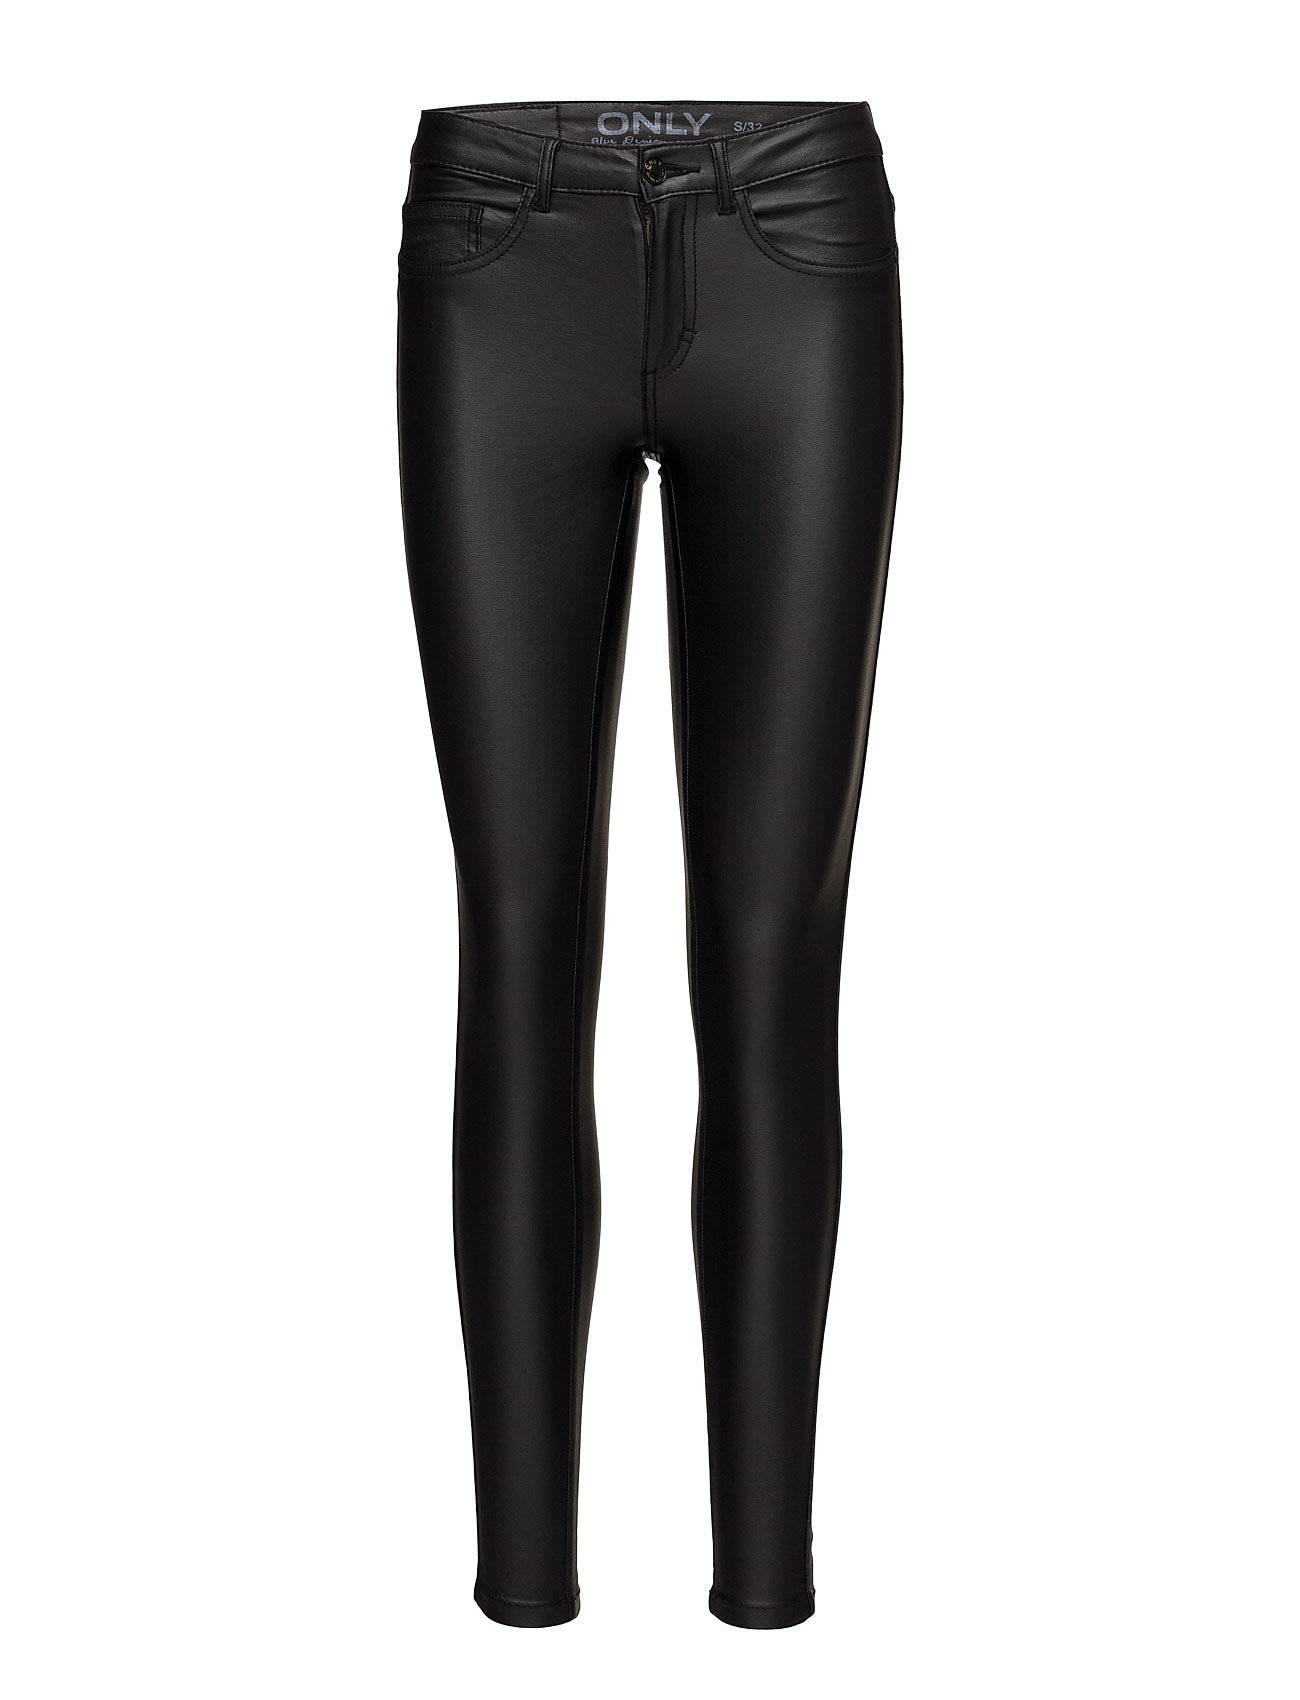 Image of ONLY Onlroyal R Sk Rock Coated Pnt Pim Noos Leather Leggings/Housut Musta ONLY